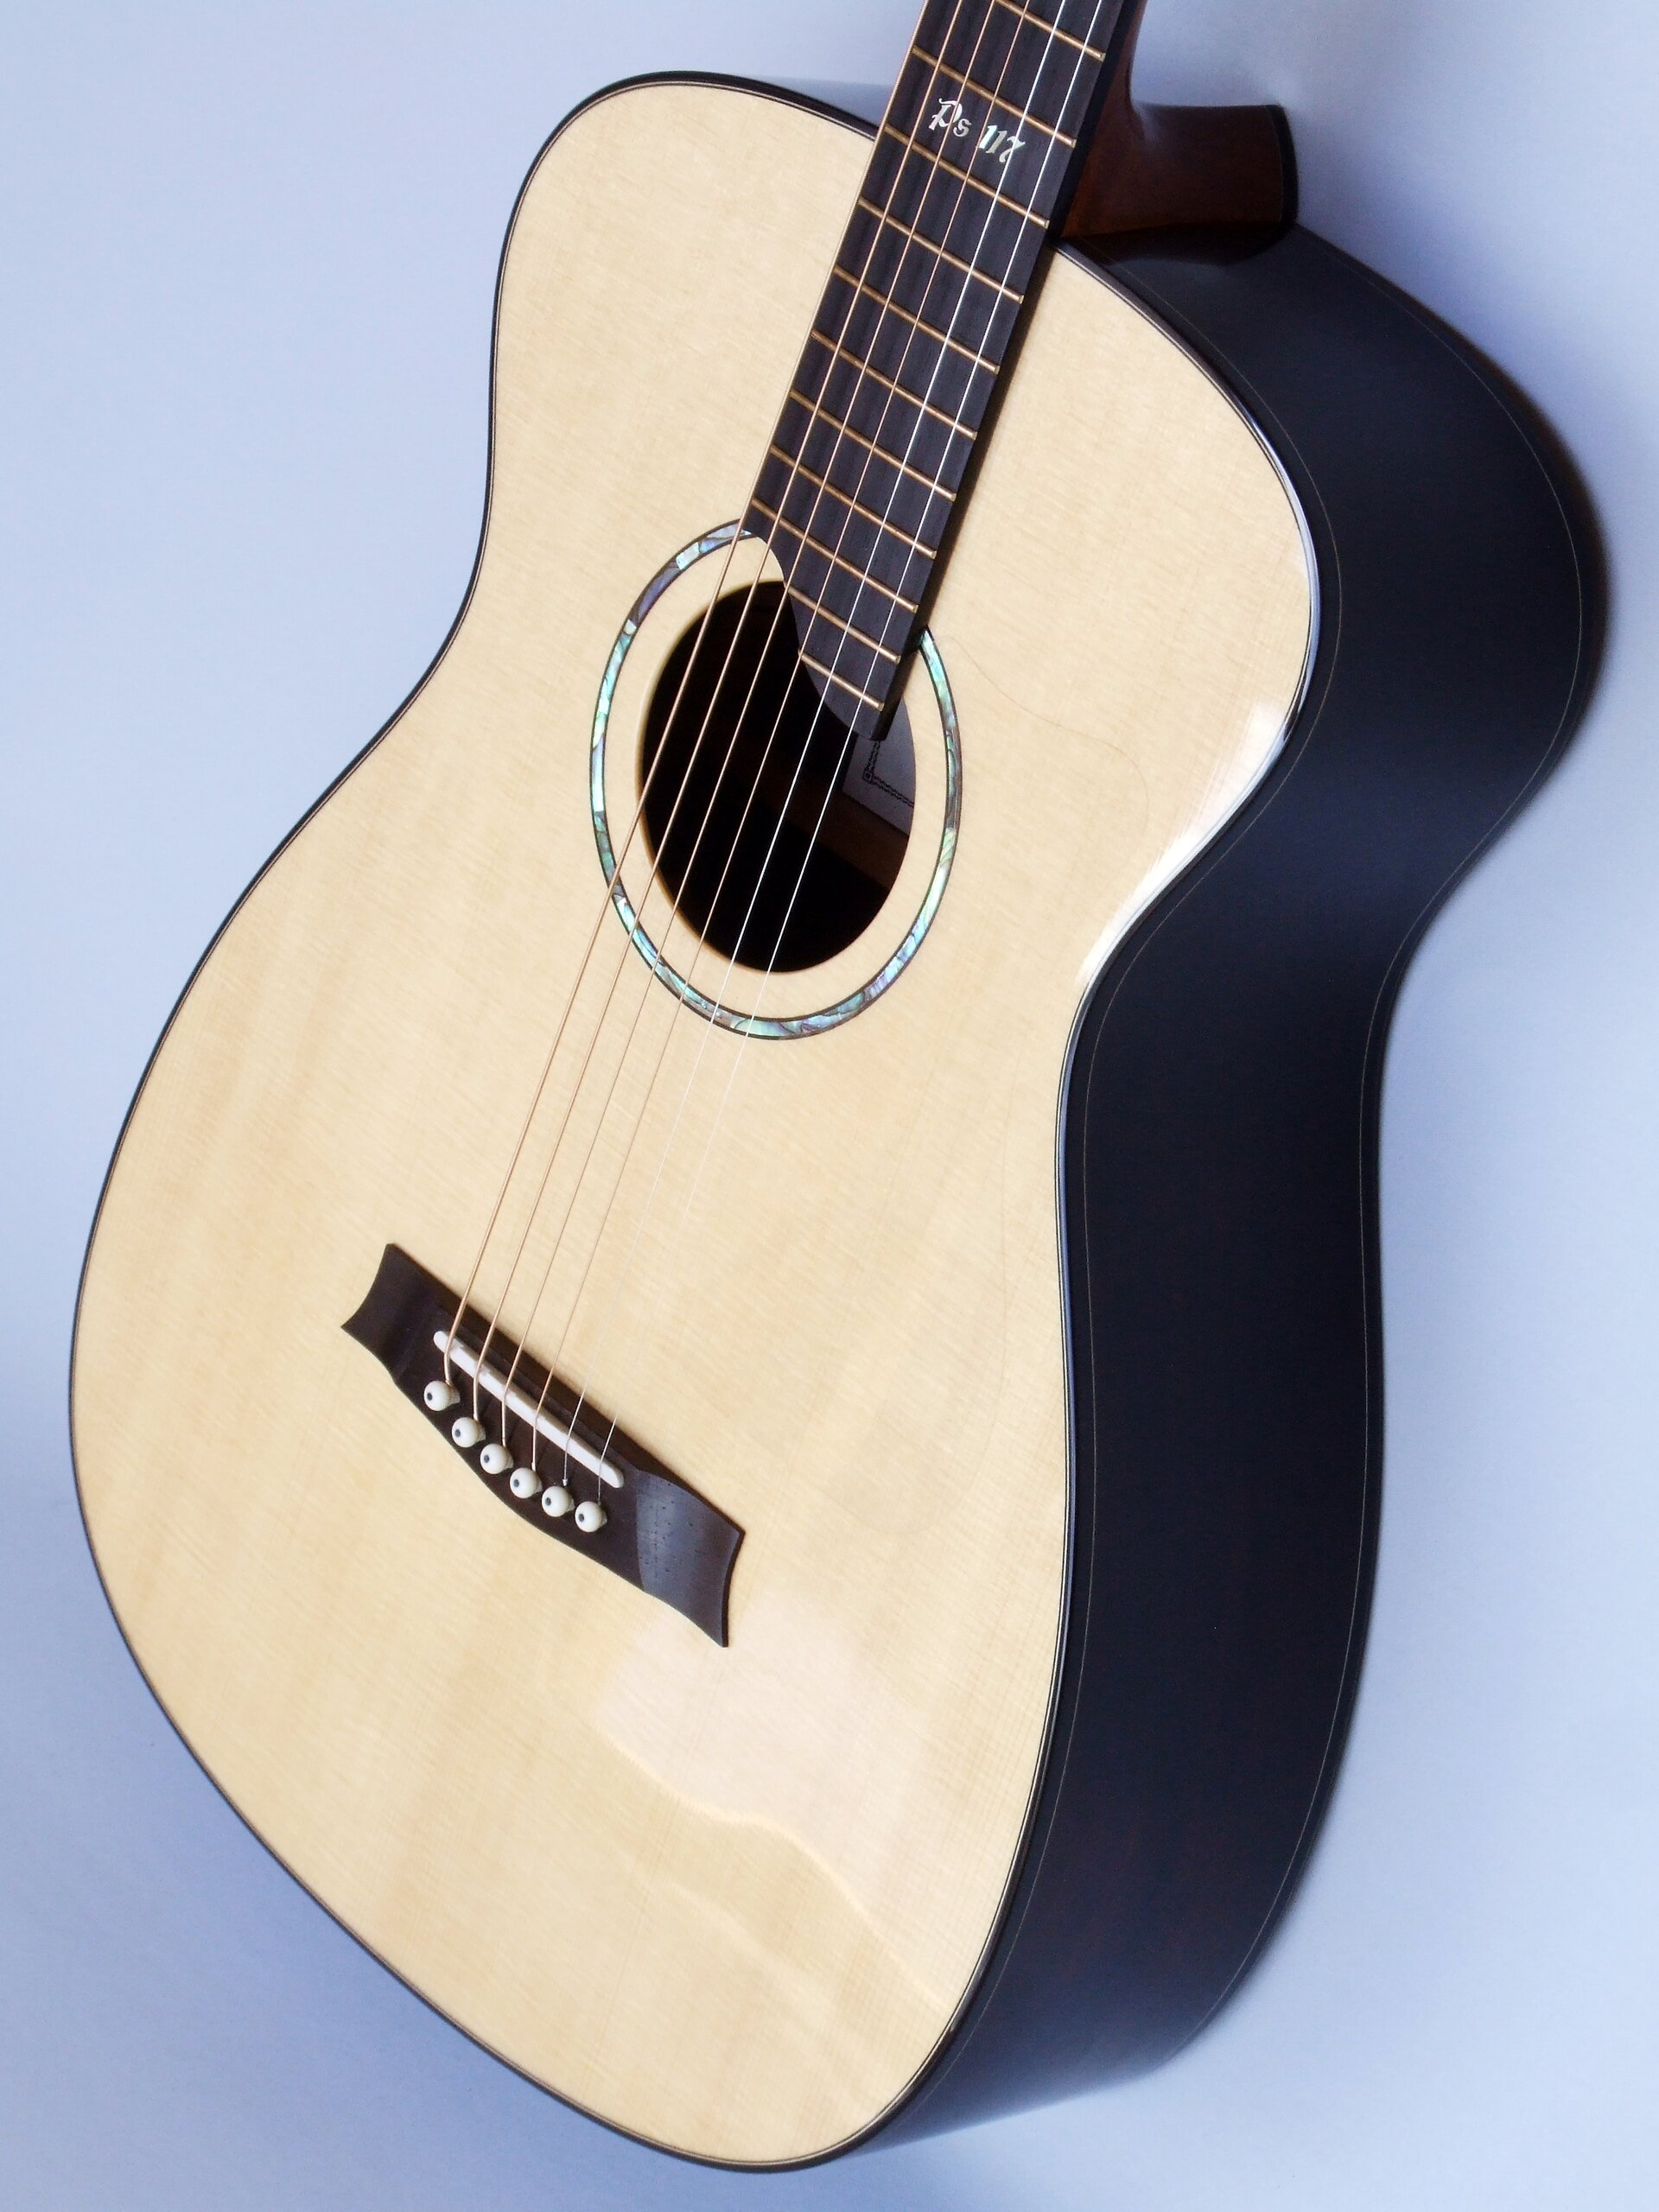 Small body steel string guitar with Lutz spruce top and Brazilian rosewood back and sides